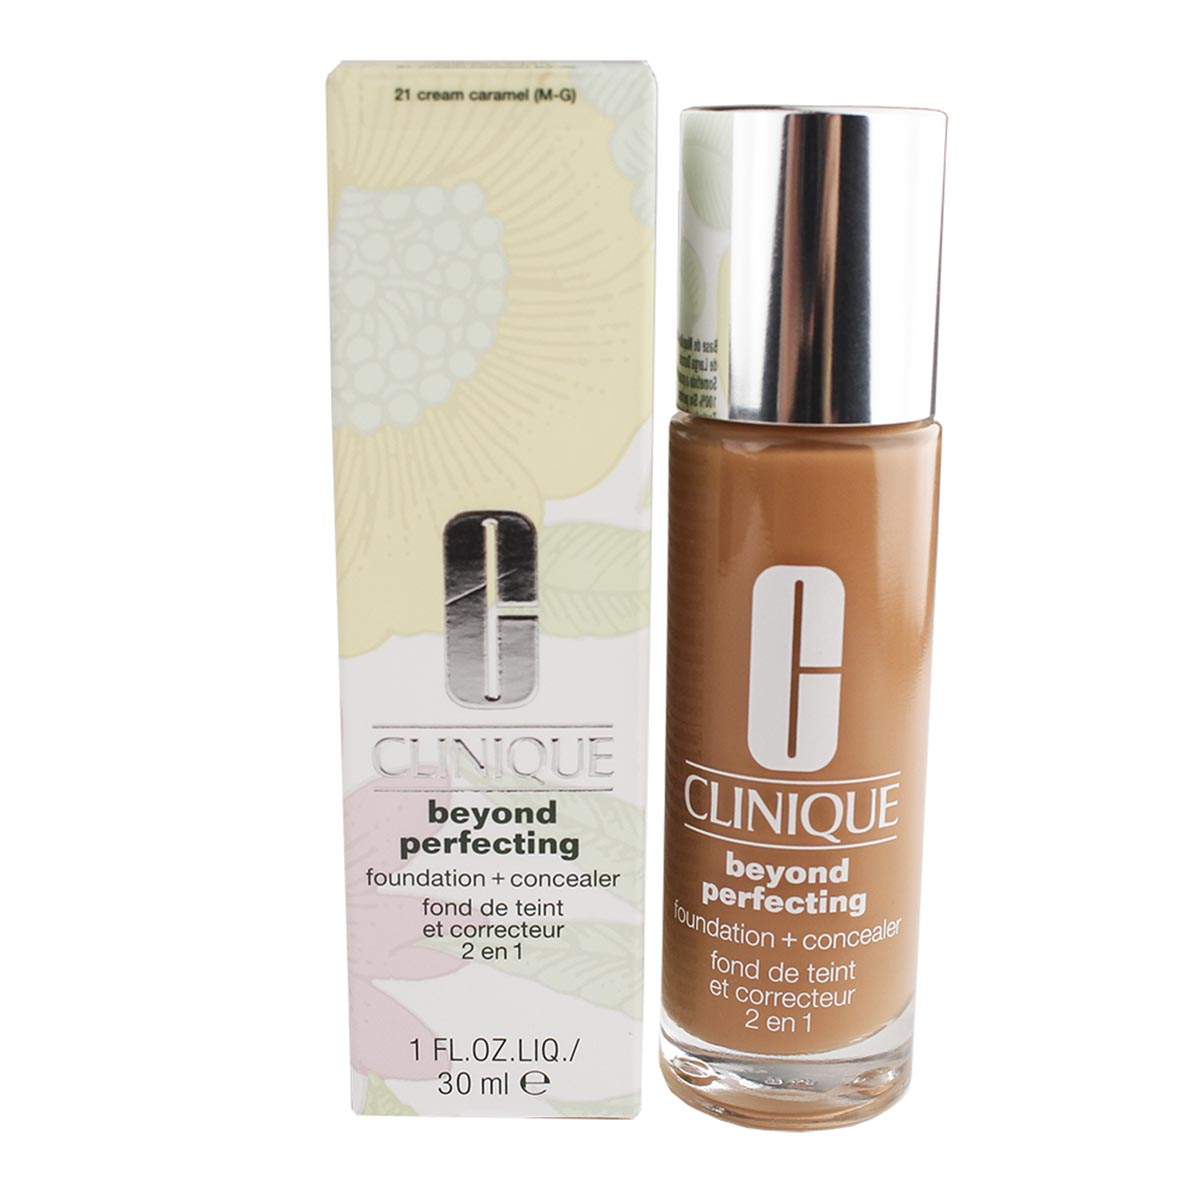 Clinique beyond perfecting foundation concealer 21 cream caramel